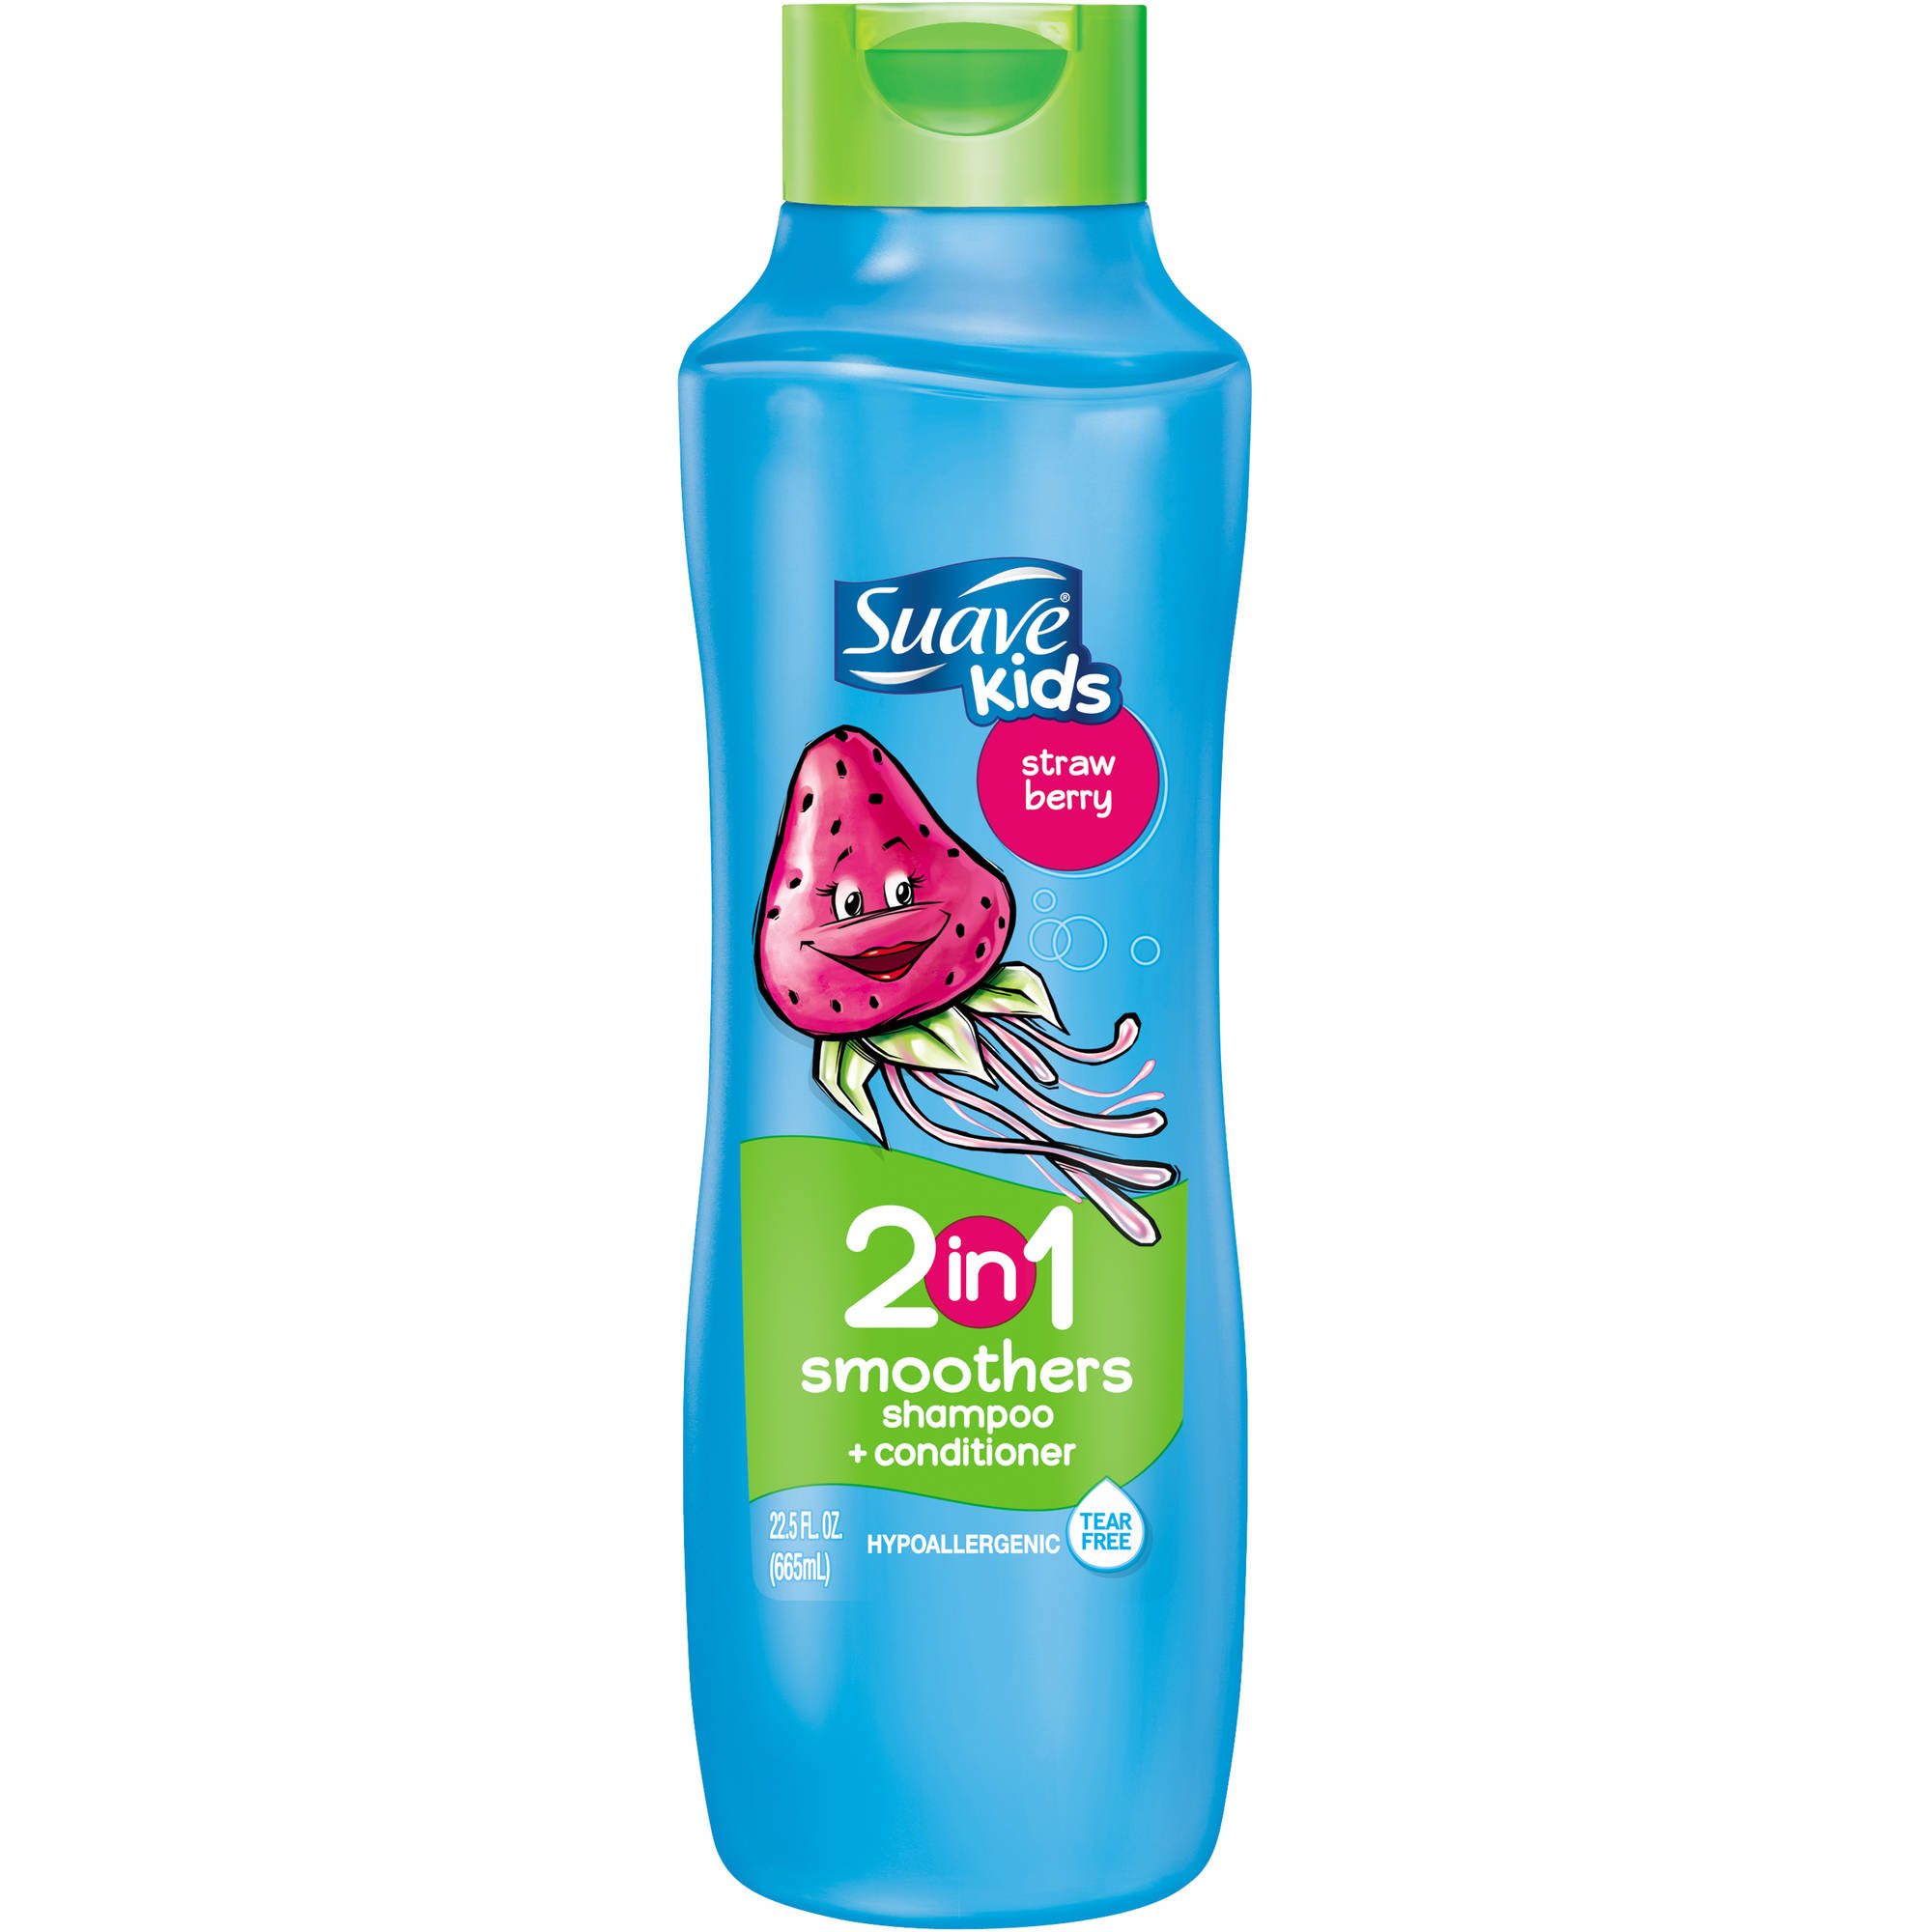 Suave Kids Strawberry Smoothers 2 in 1 Shampoo + Conditioner, 22.5 fl oz